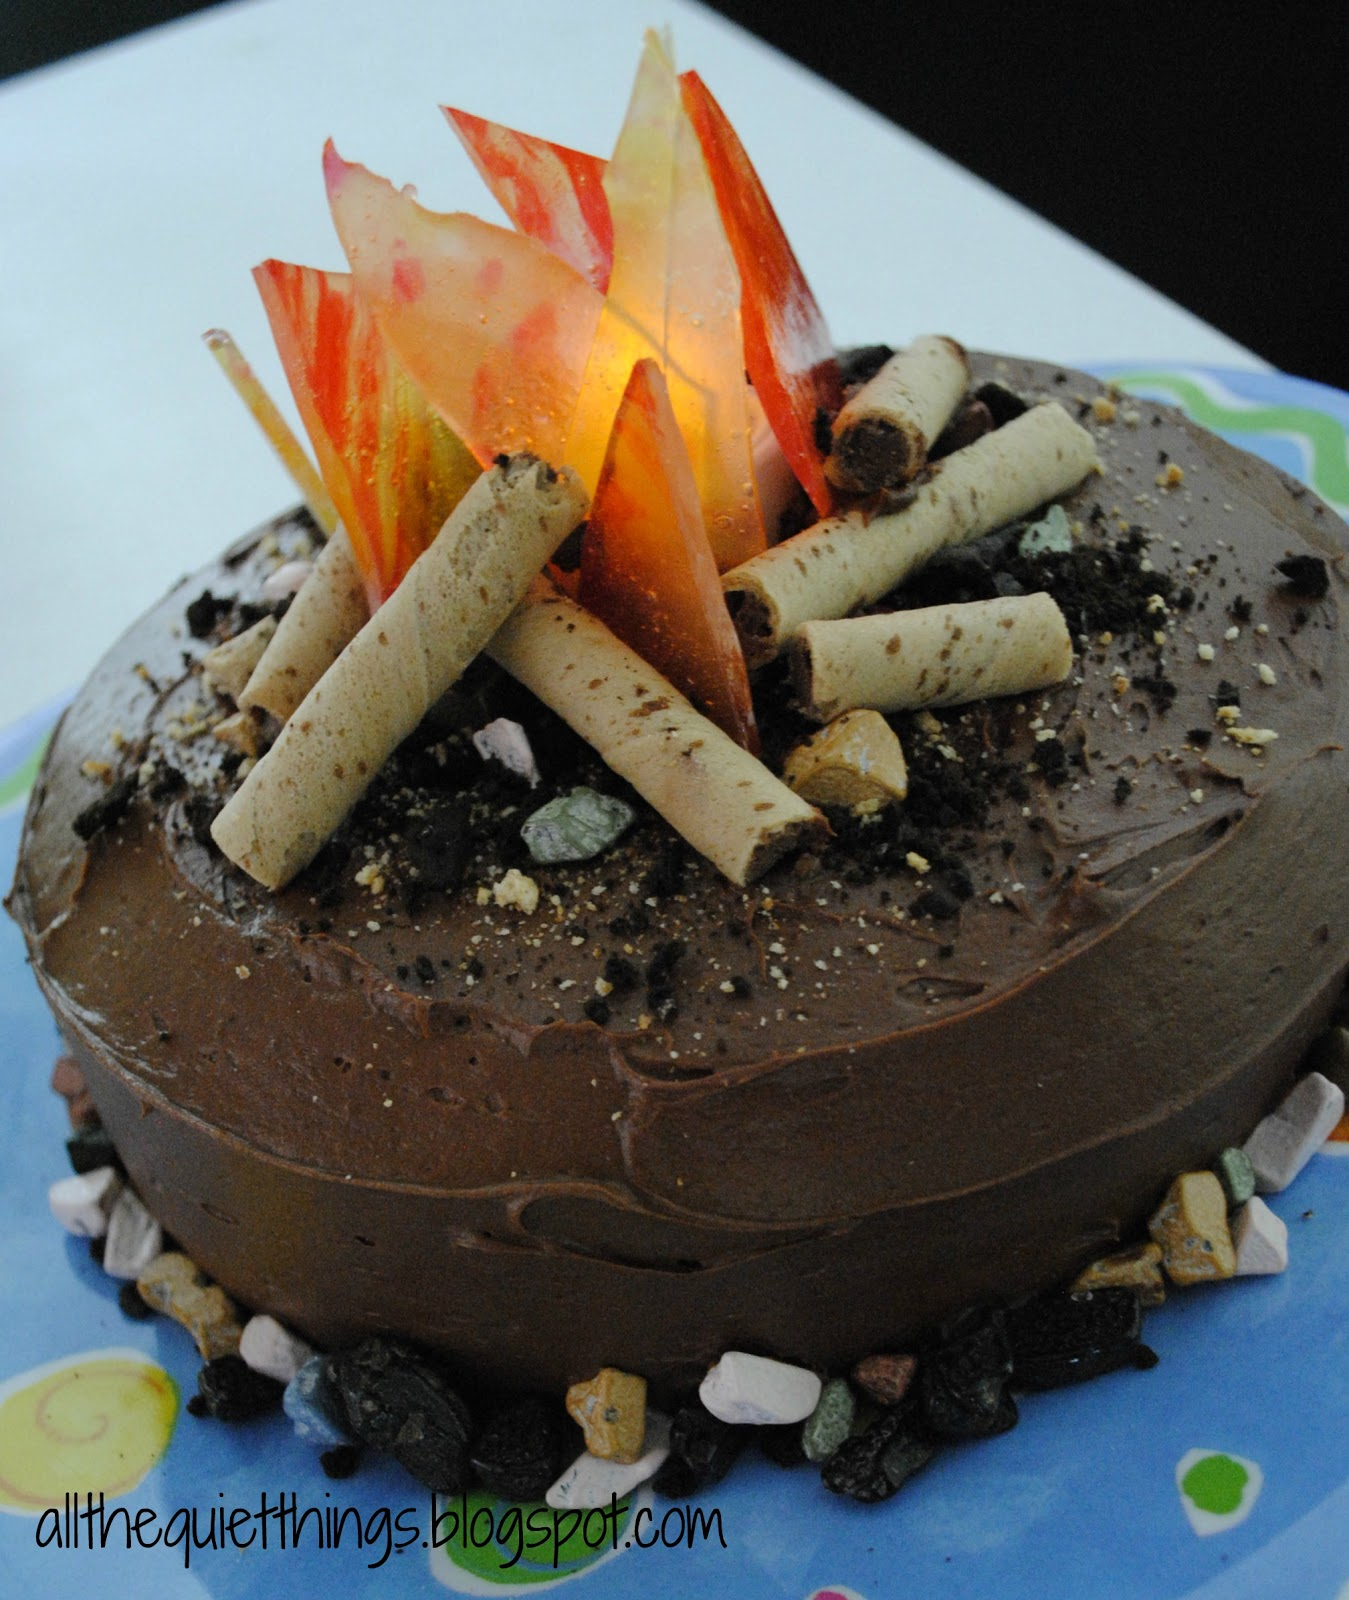 Cake Decorating How To Make Fire : All The Quiet Things: Campfire Cake